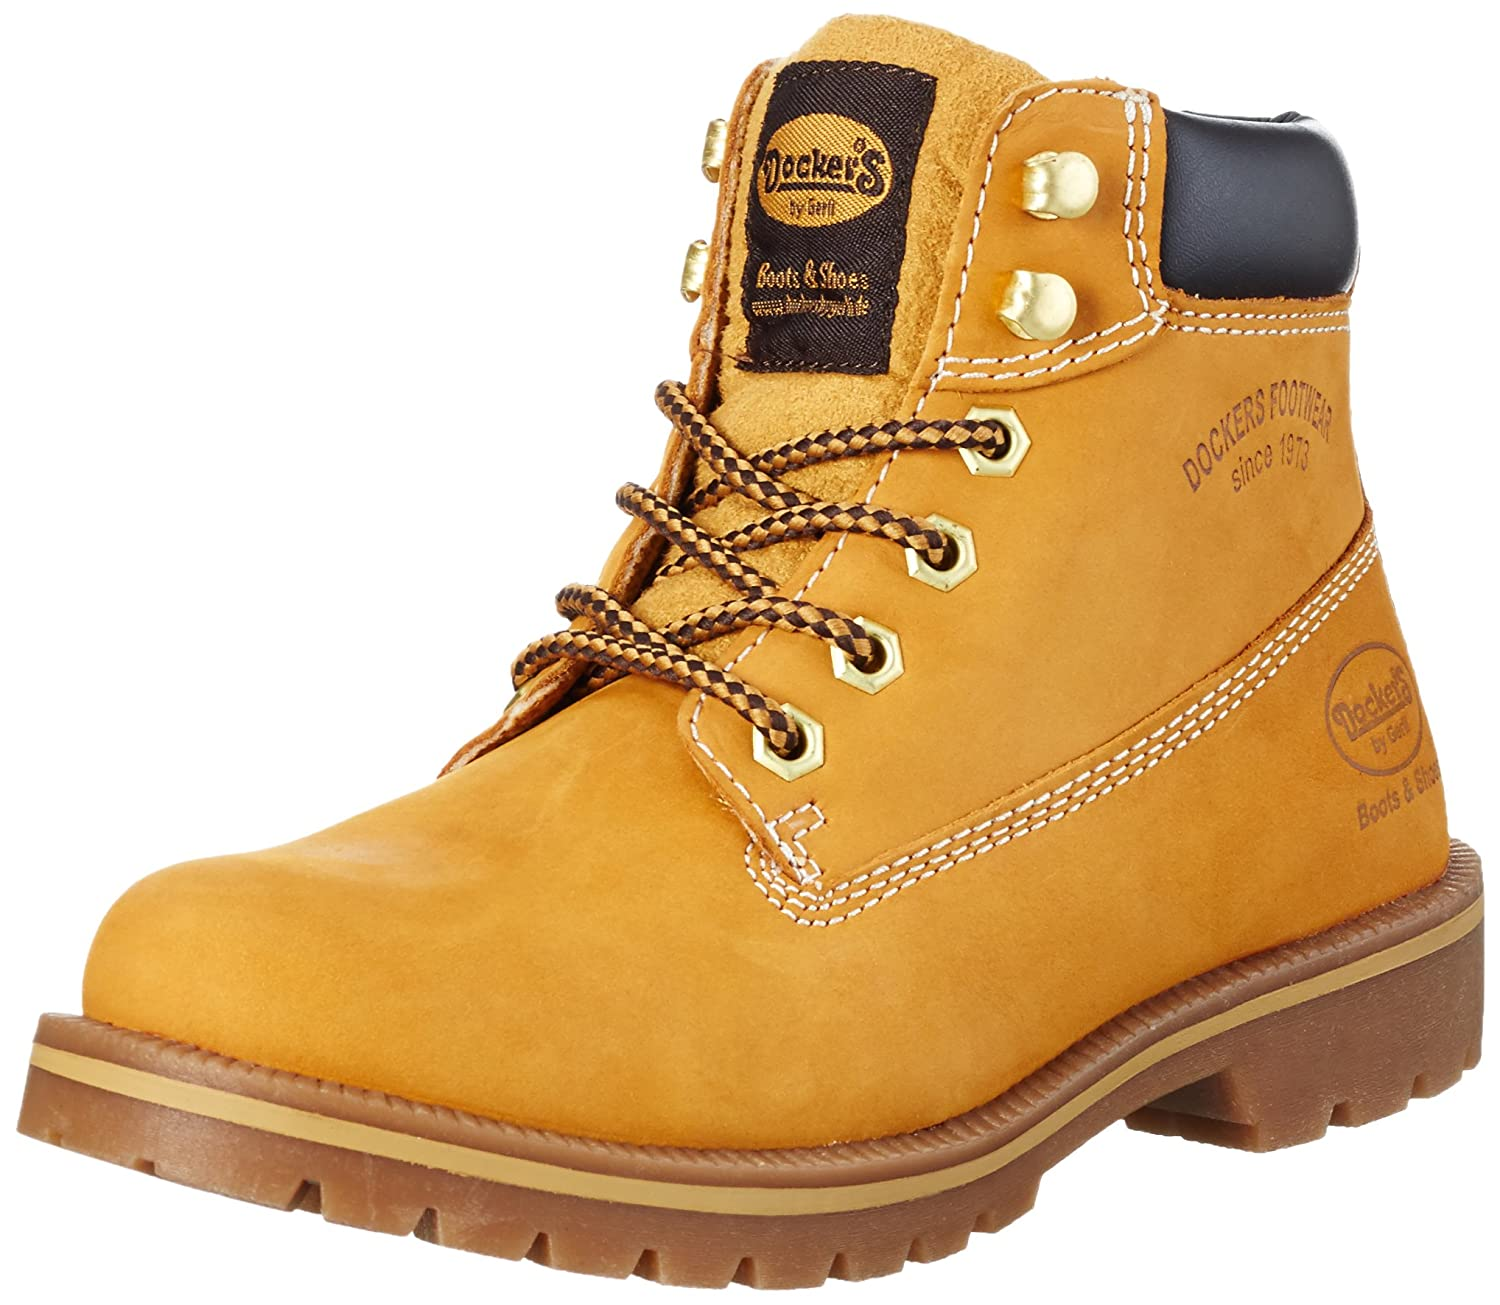 Dockers by Gerli 35aa203-300910, Botines para Mujer38 EU|Amarillo (Golden Tan 910)